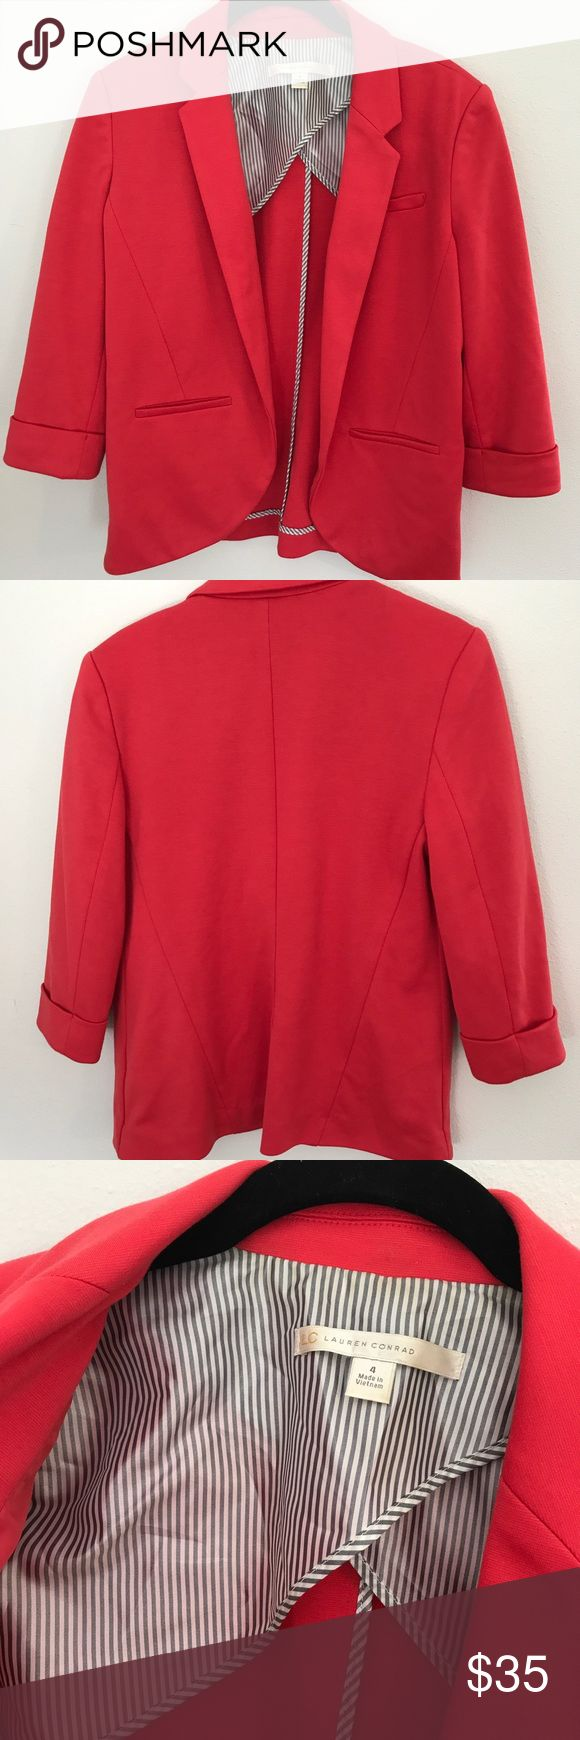 ❤️ Red LC Lauren Conrad blazer ❤️ Worn once, great shape! It's a tomato red soft structure blazer, meaning it's not stiff. It's lined with a nylon on the sides and cute stitching on the inner seams. Perfect for work or with jeans. LC Lauren Conrad Jackets & Coats Blazers